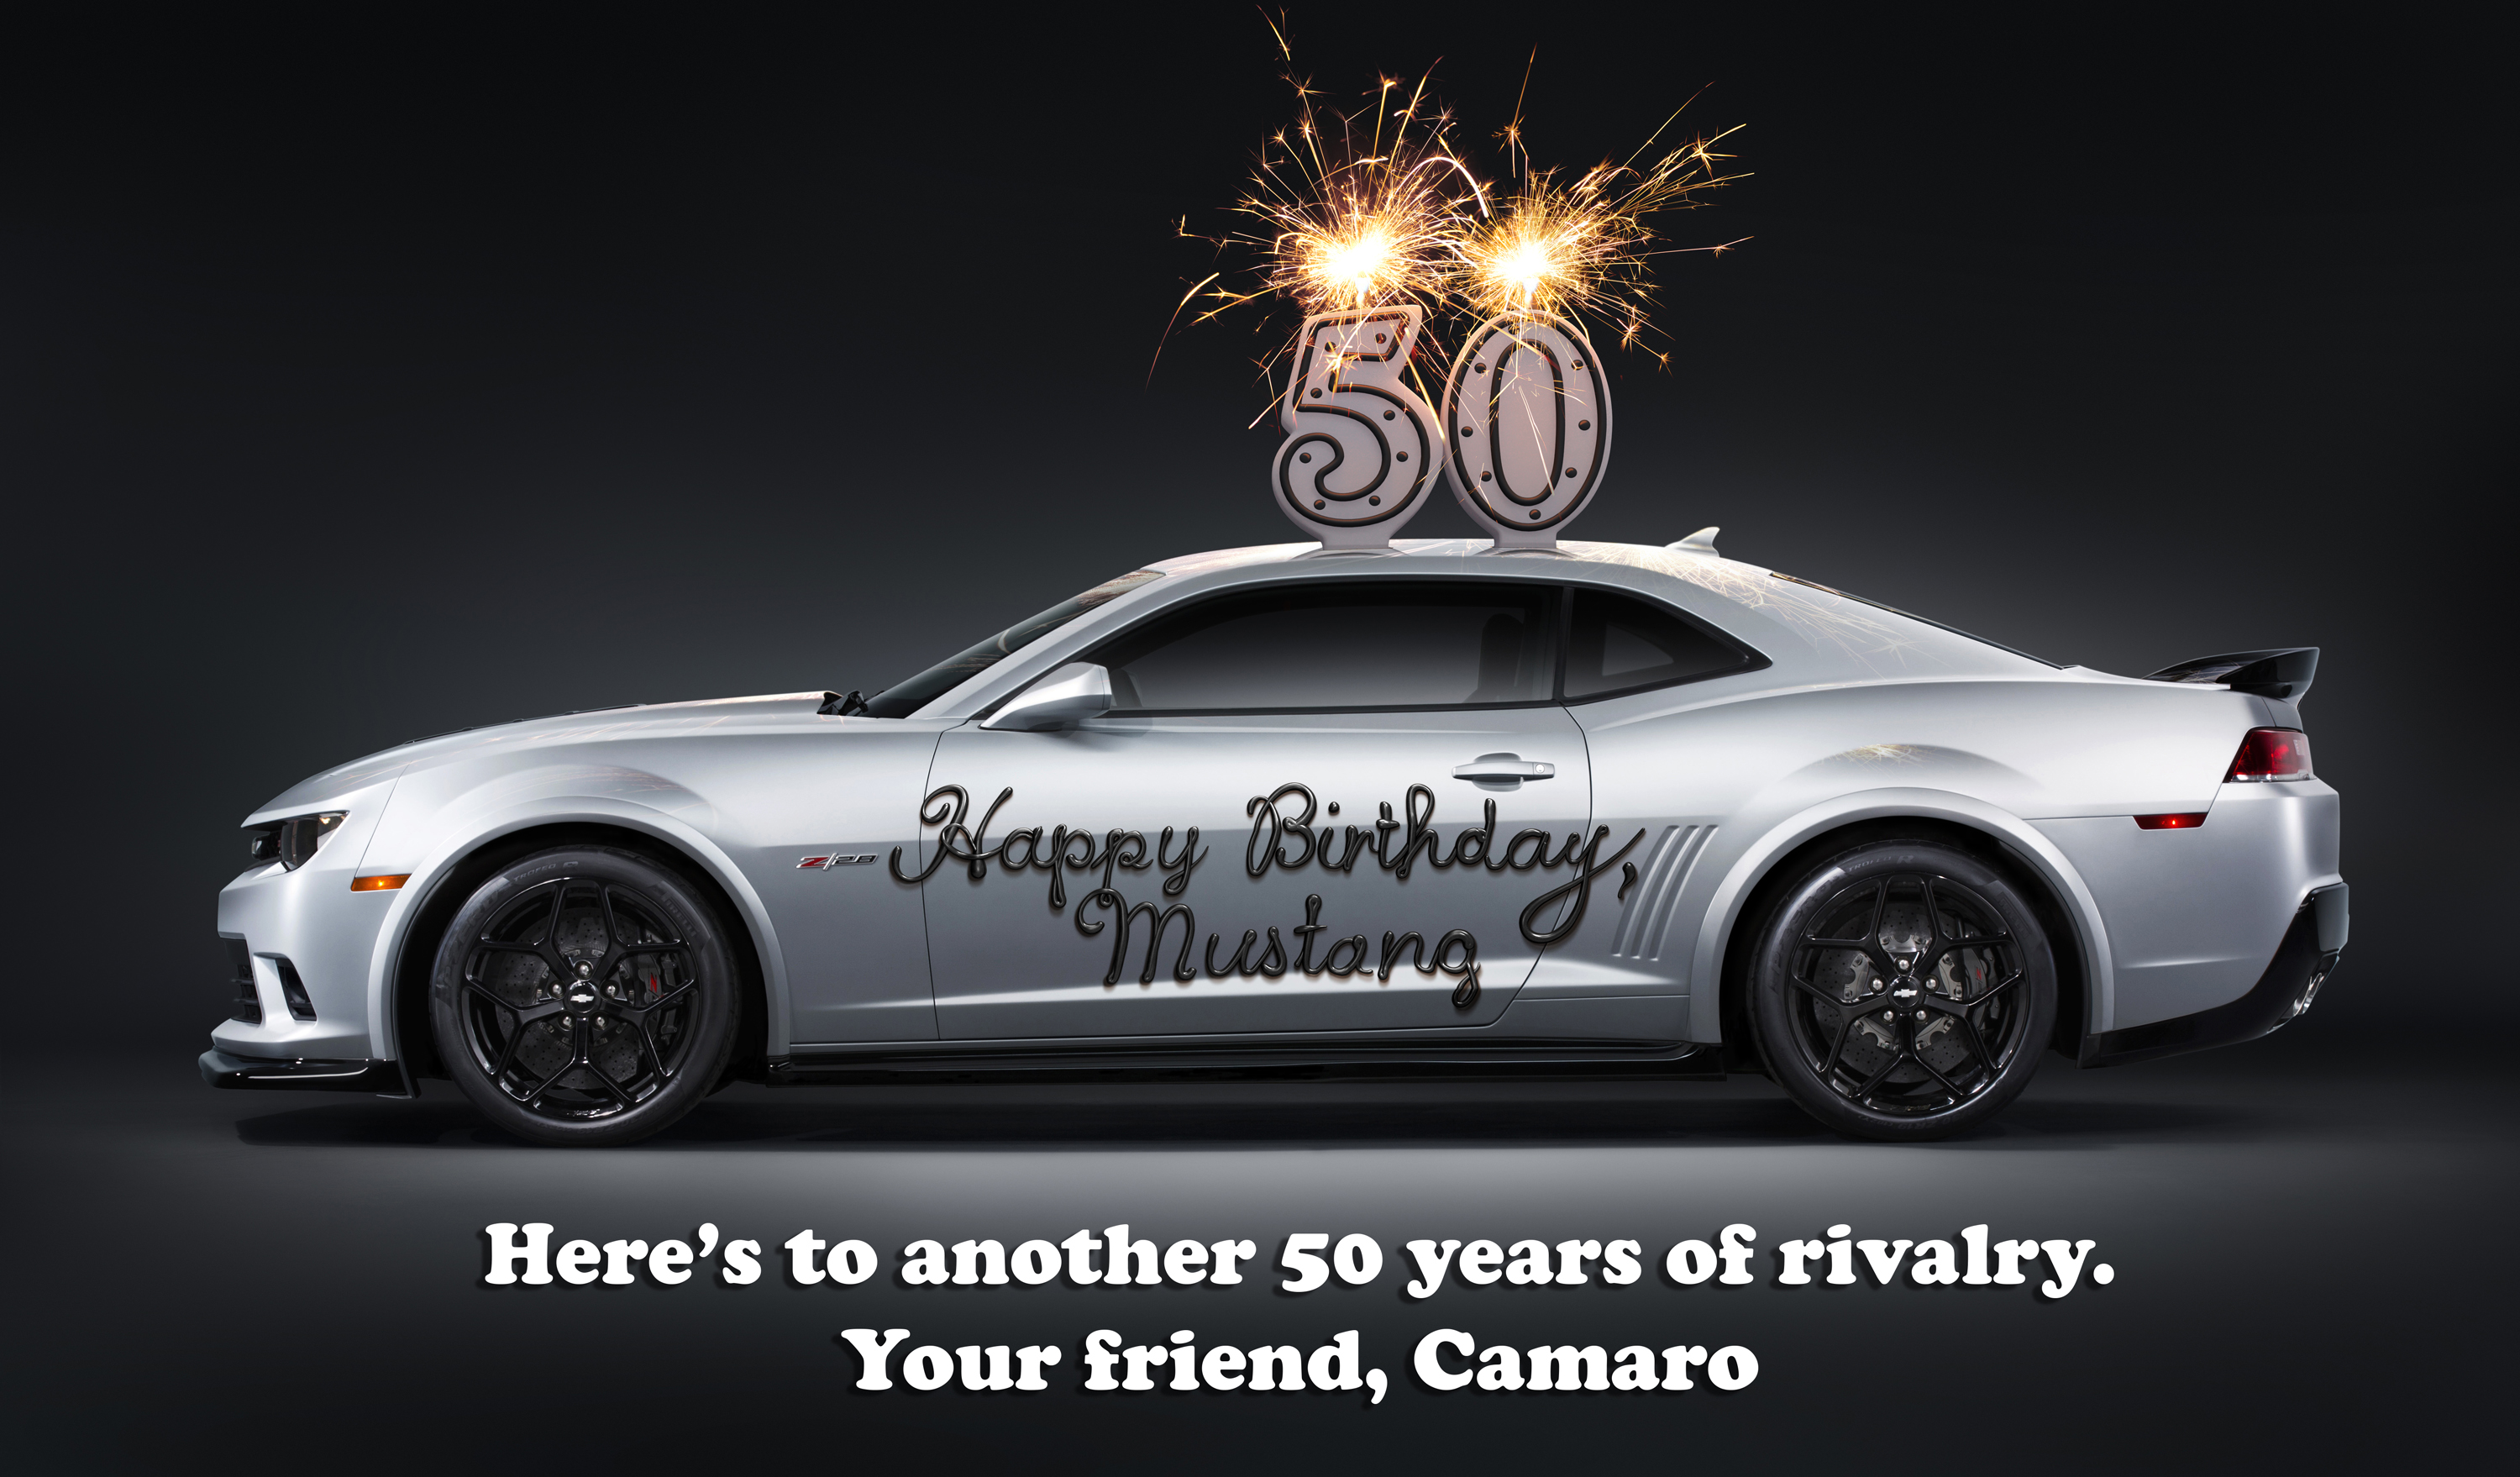 Rivalry Aside Chevy Camaro Wishes Ford Mustang A Happy 50th